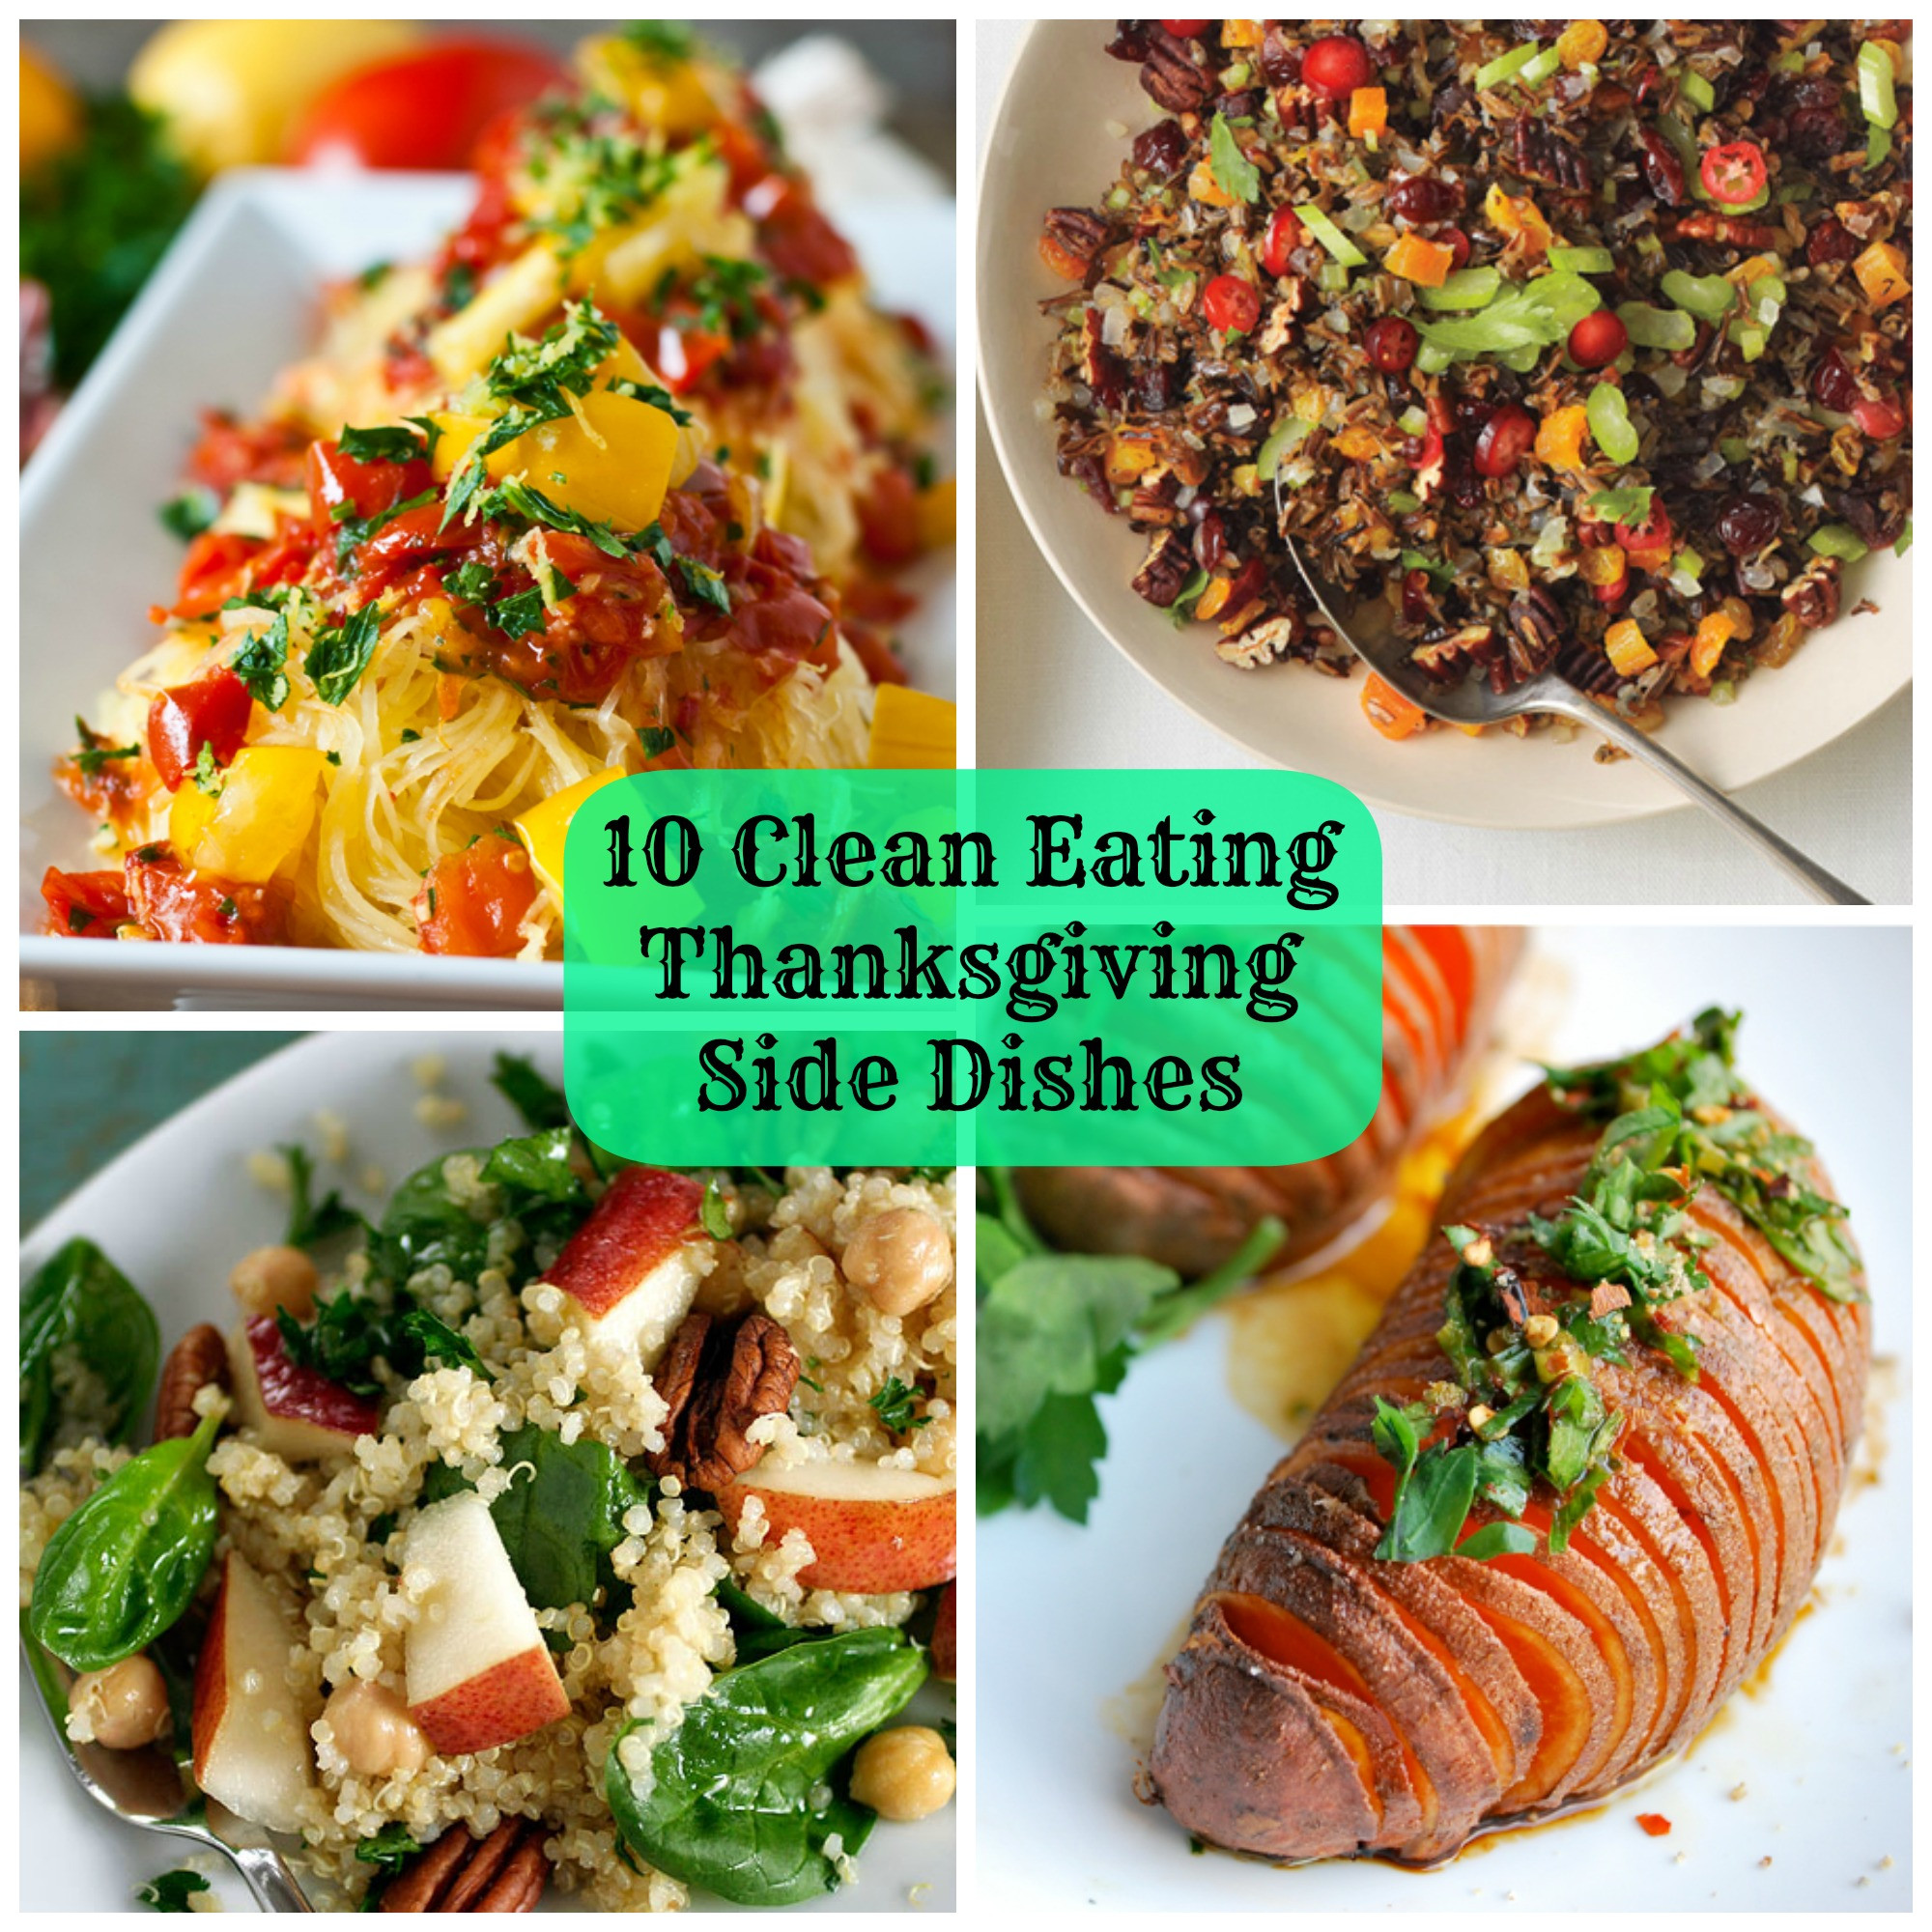 Diabetic Thanksgiving Side Dishes  10 Clean Eating Thanksgiving Side Dishes That Are Not